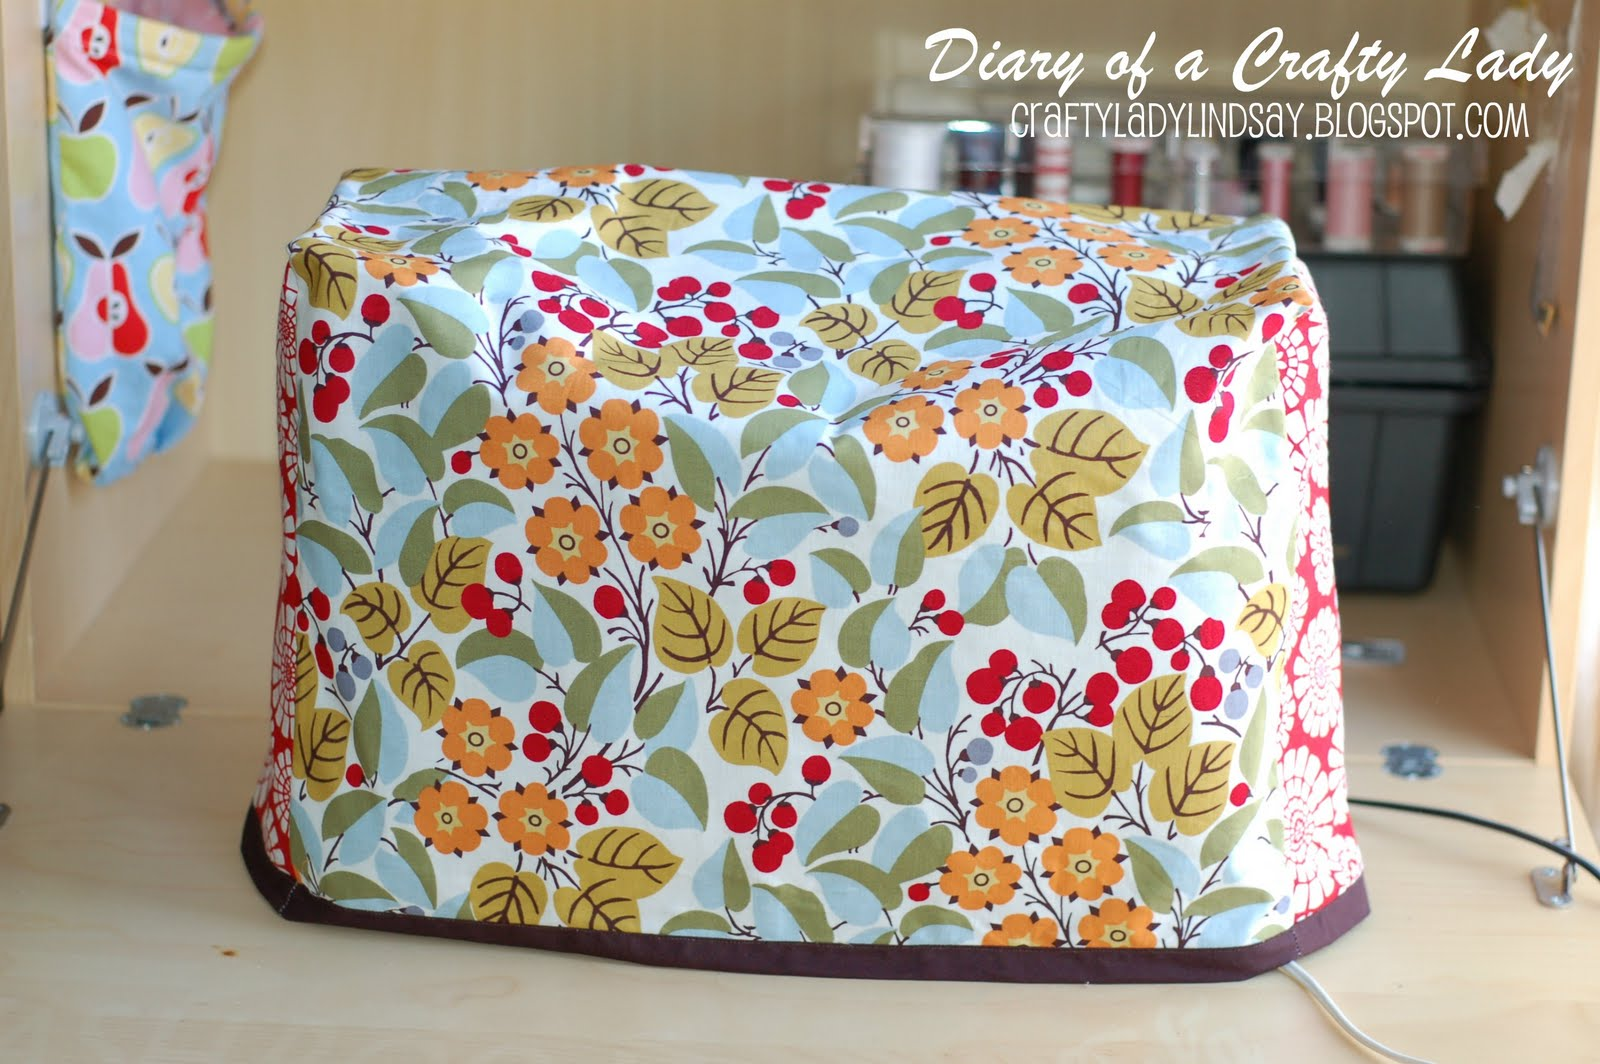 Diary of a Crafty Lady: Sewing Machine Cover